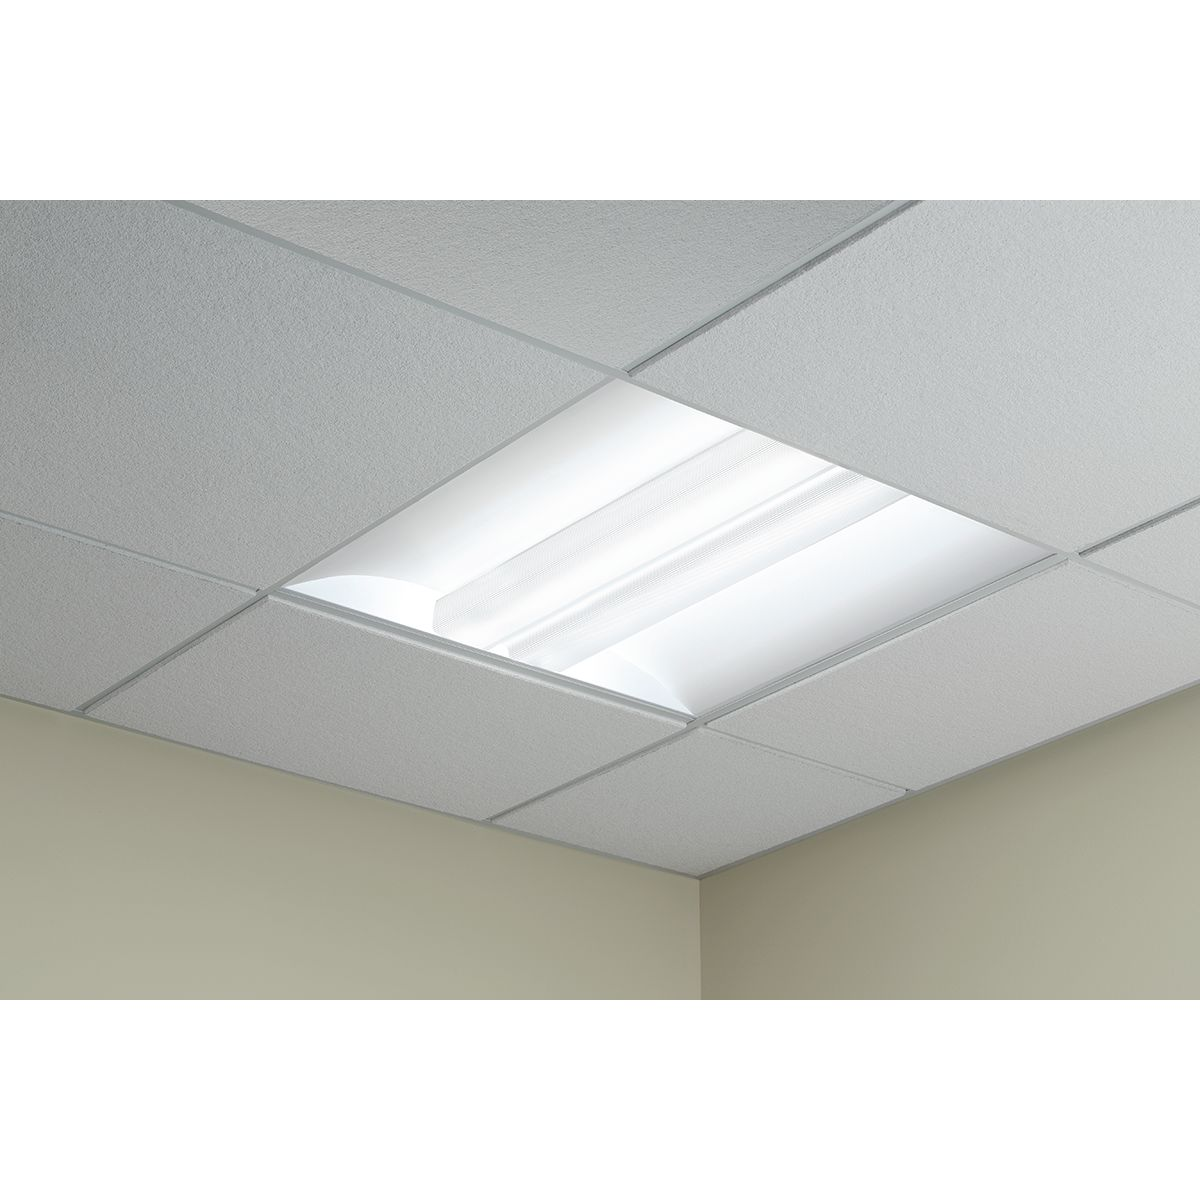 Ltgr Recessed Linear Troffers Commercial Indoor Lighting Columbia Wiring Diagrams By Col Ltgr24 Prodimage Ltgr22 Appimage 02 01